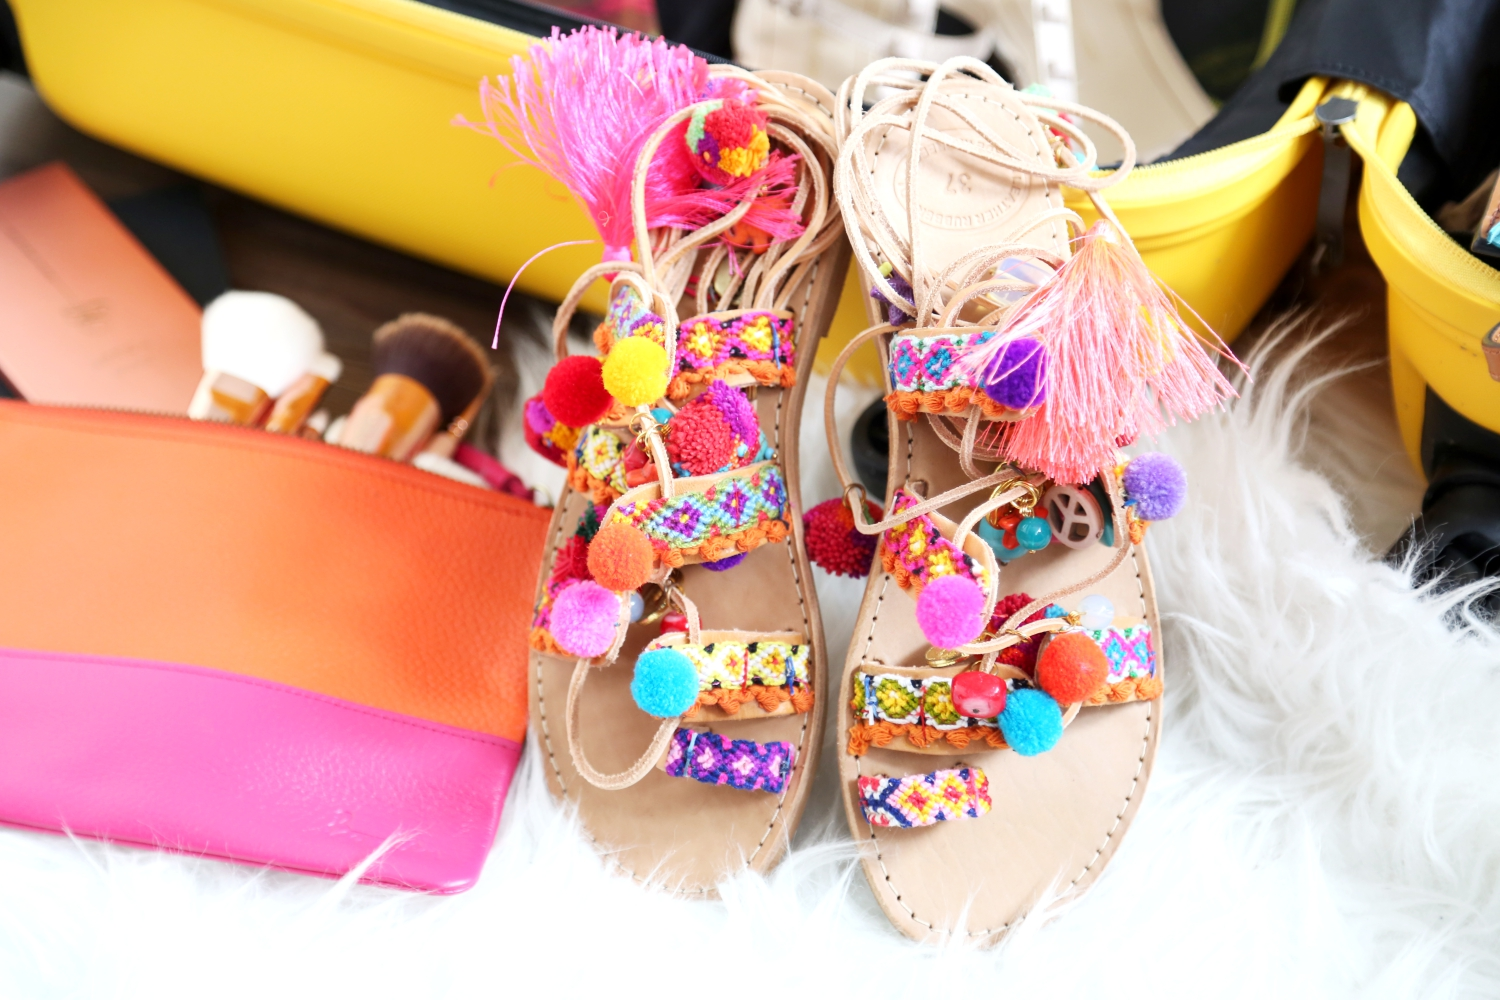 packing-sandals-bali-trip-vacation